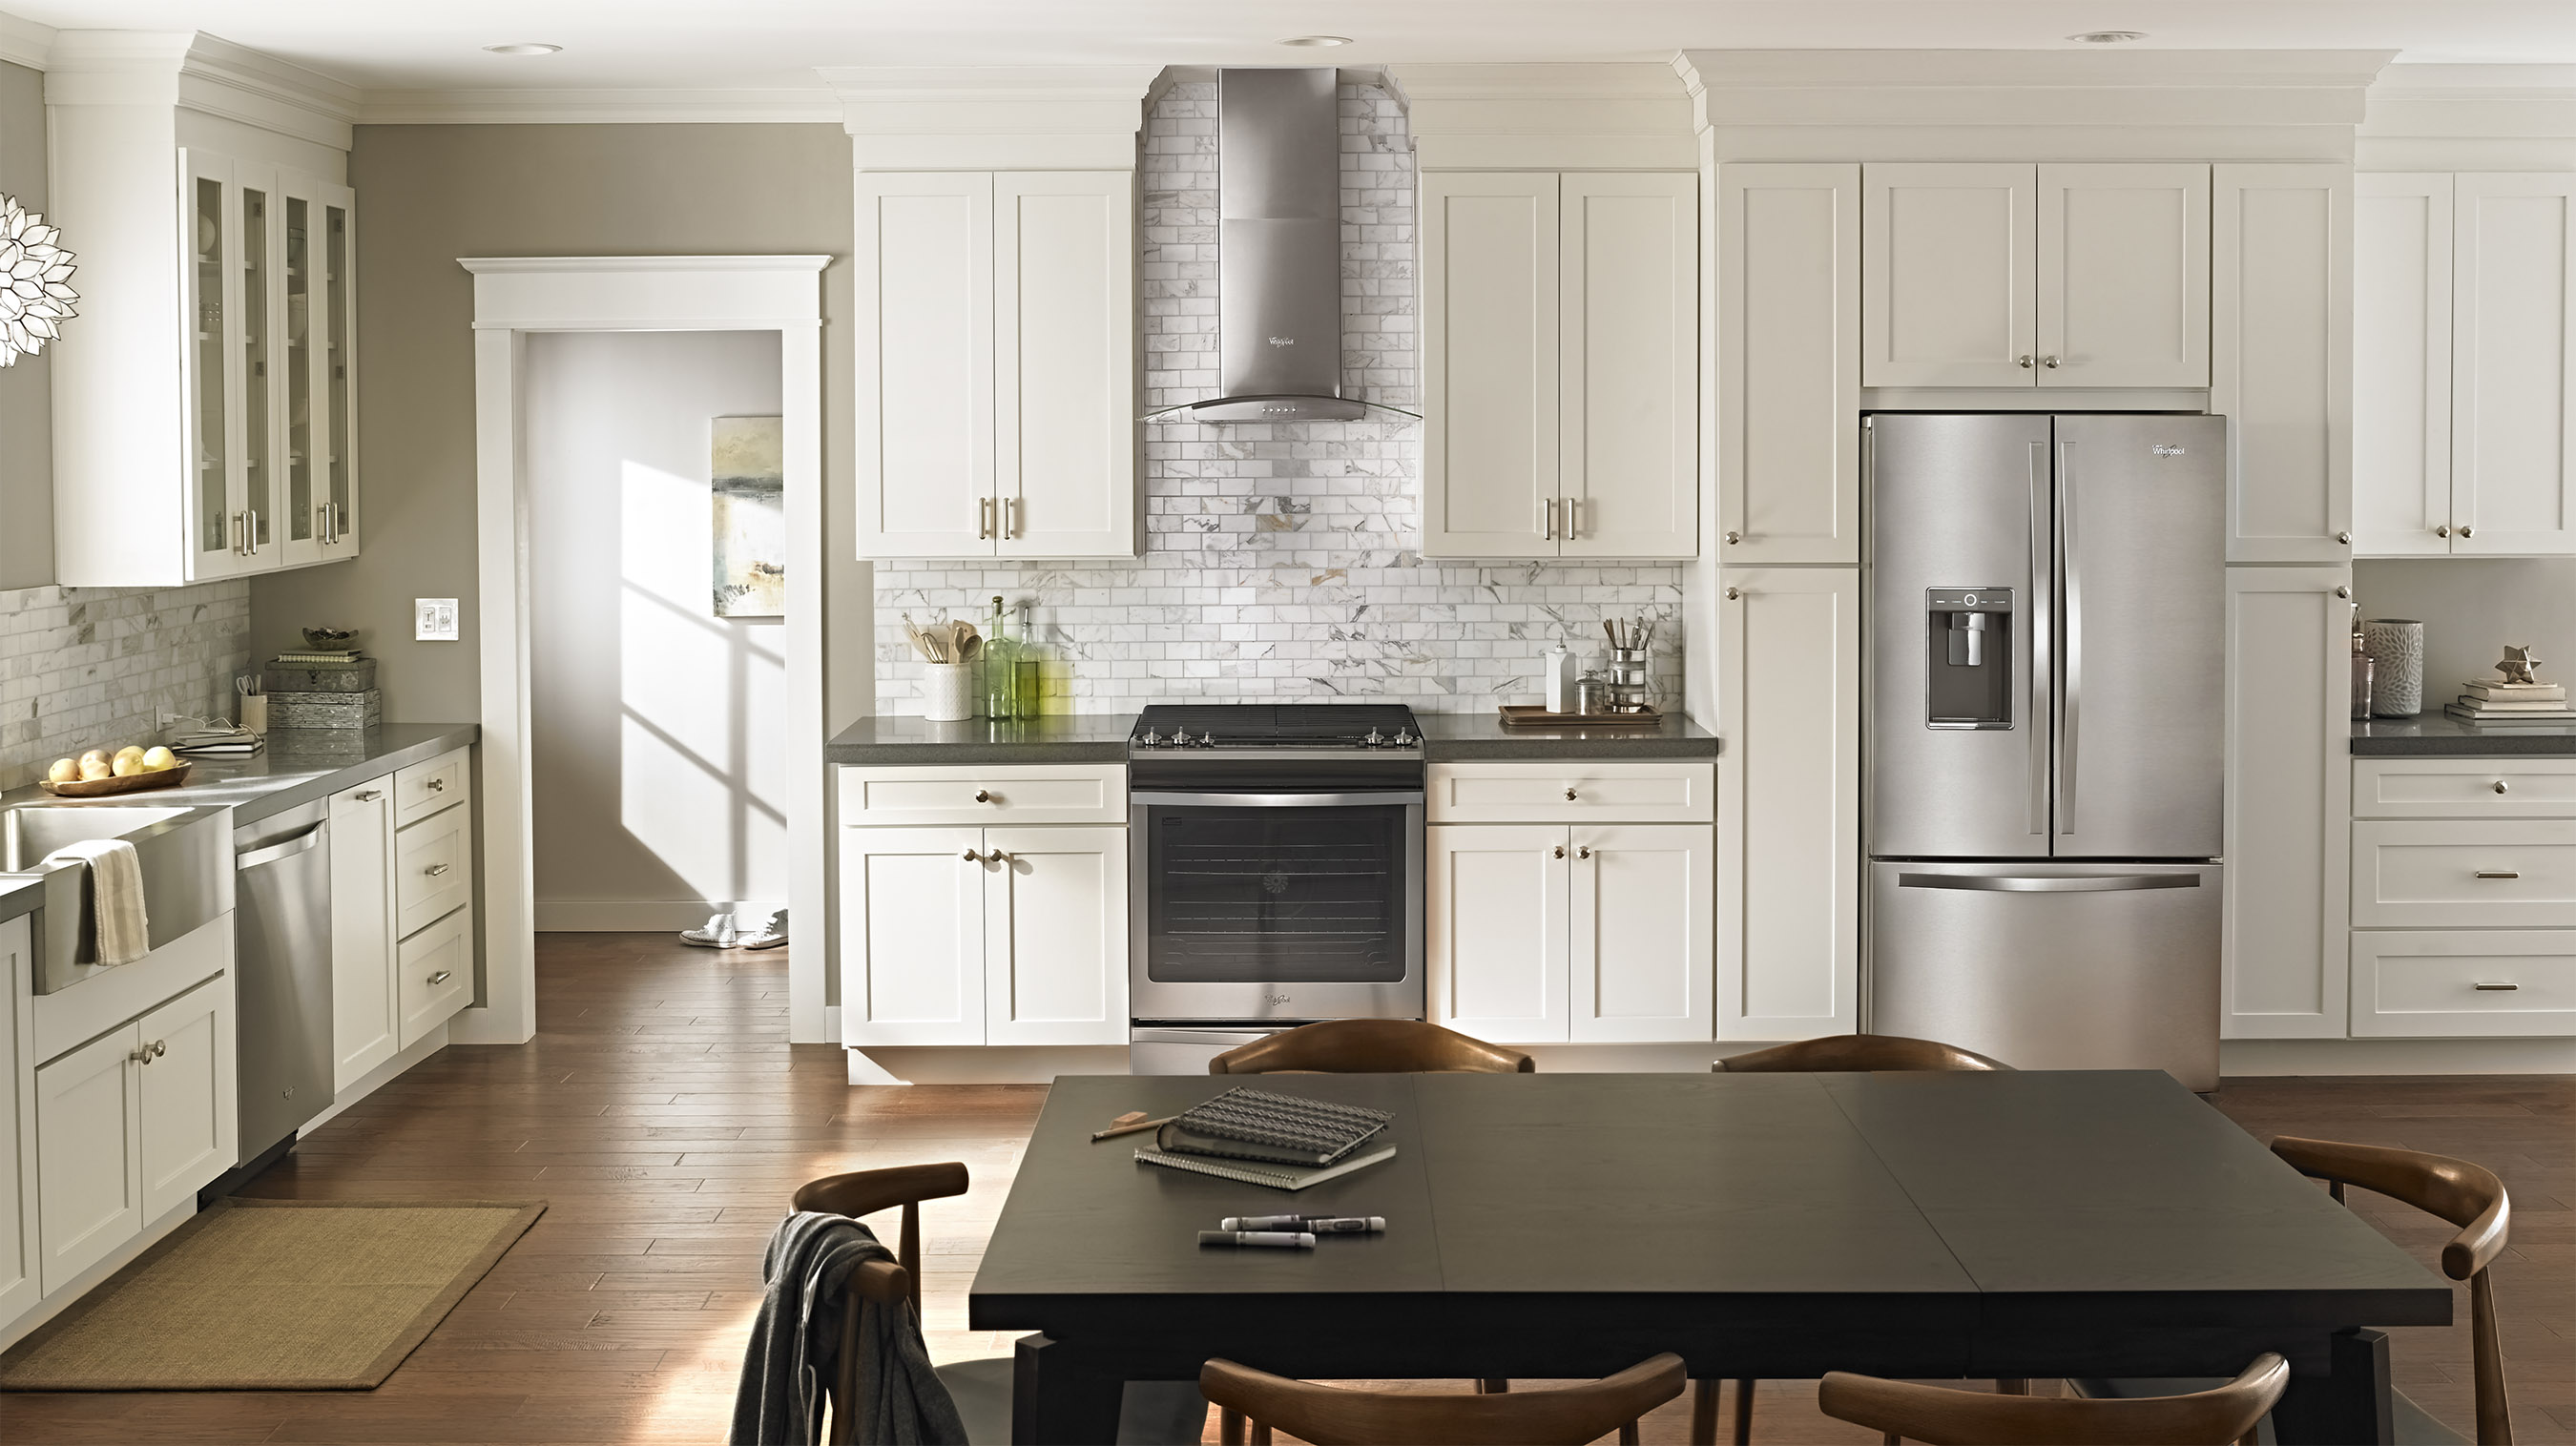 Inspired by the way families care for each other, the three-piece Smart Kitchen Suite with the CareSync™ system adapts to a family's unique needs through home automation.